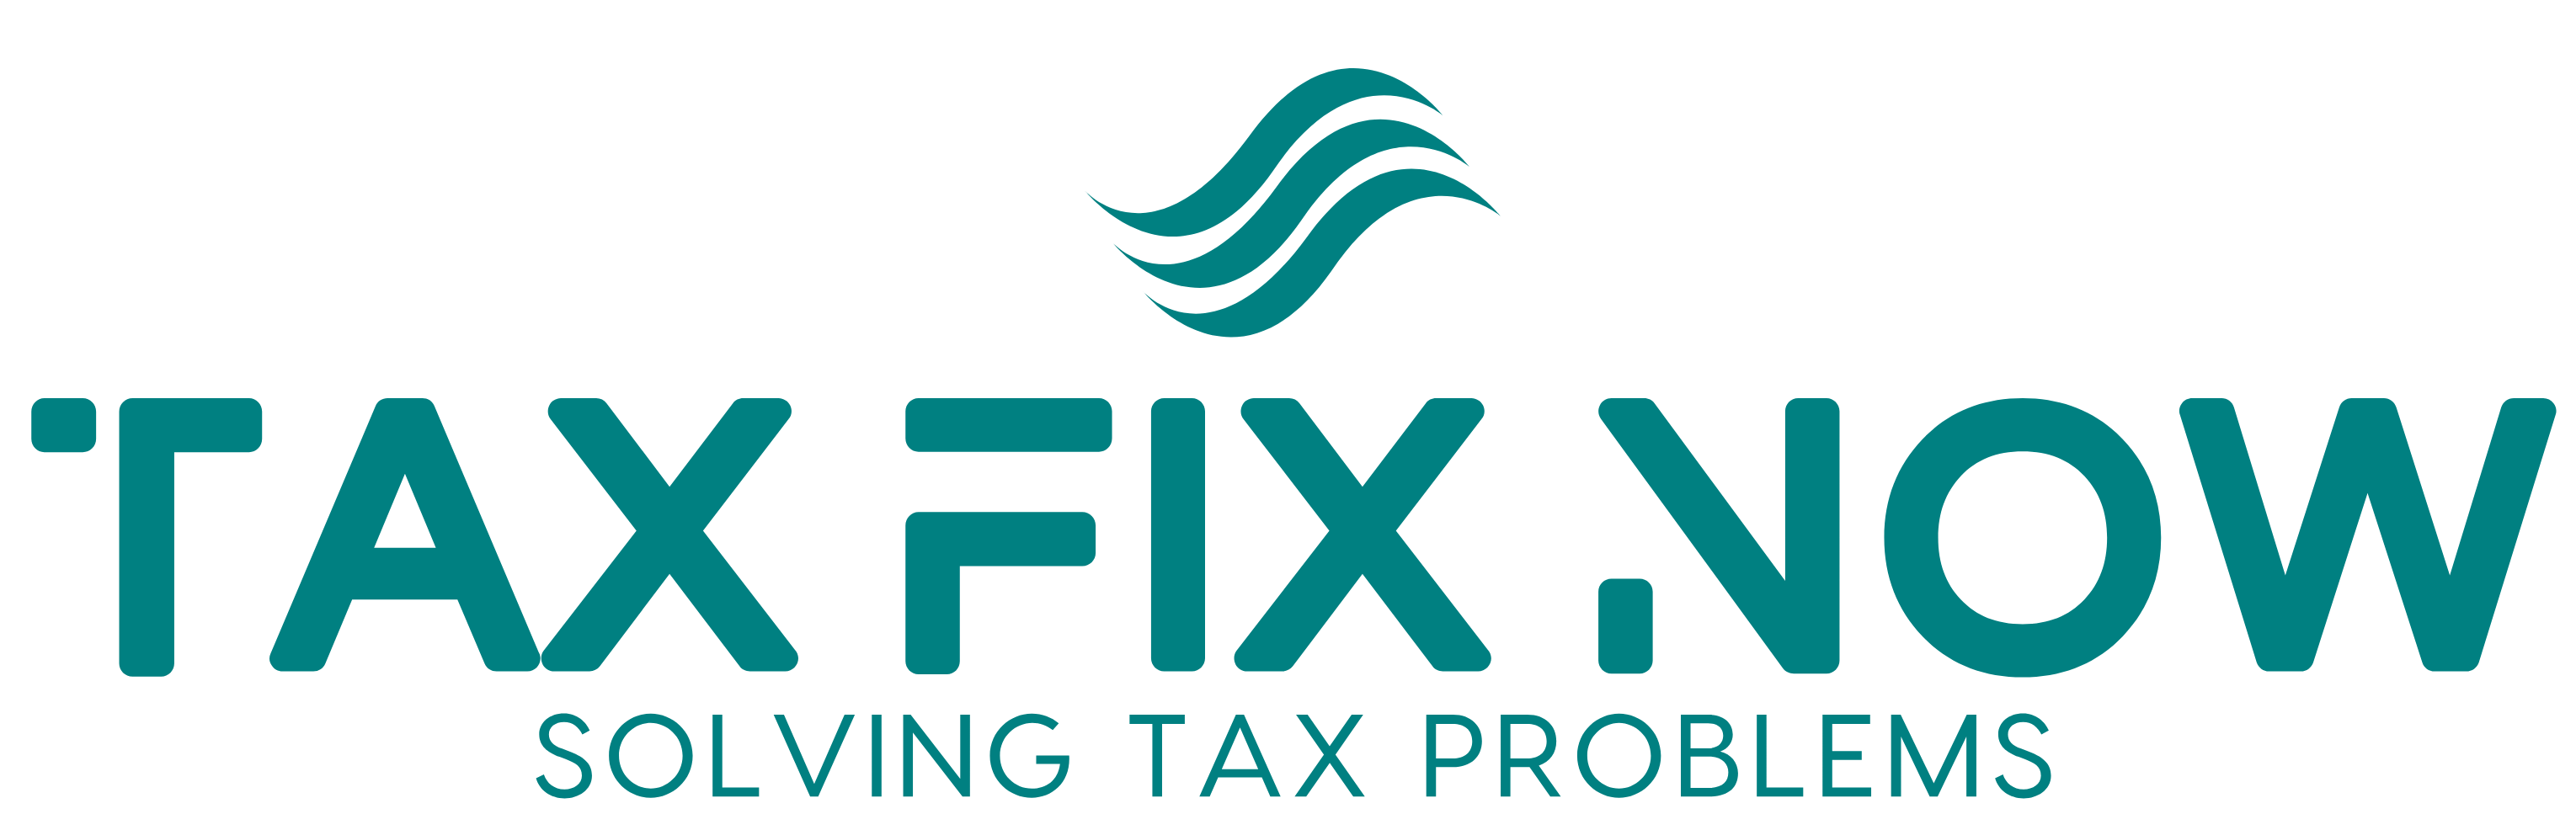 Highland Village, TX Bookkeeping Firm | Part-Time CFO Services Page | Tax Fix Now